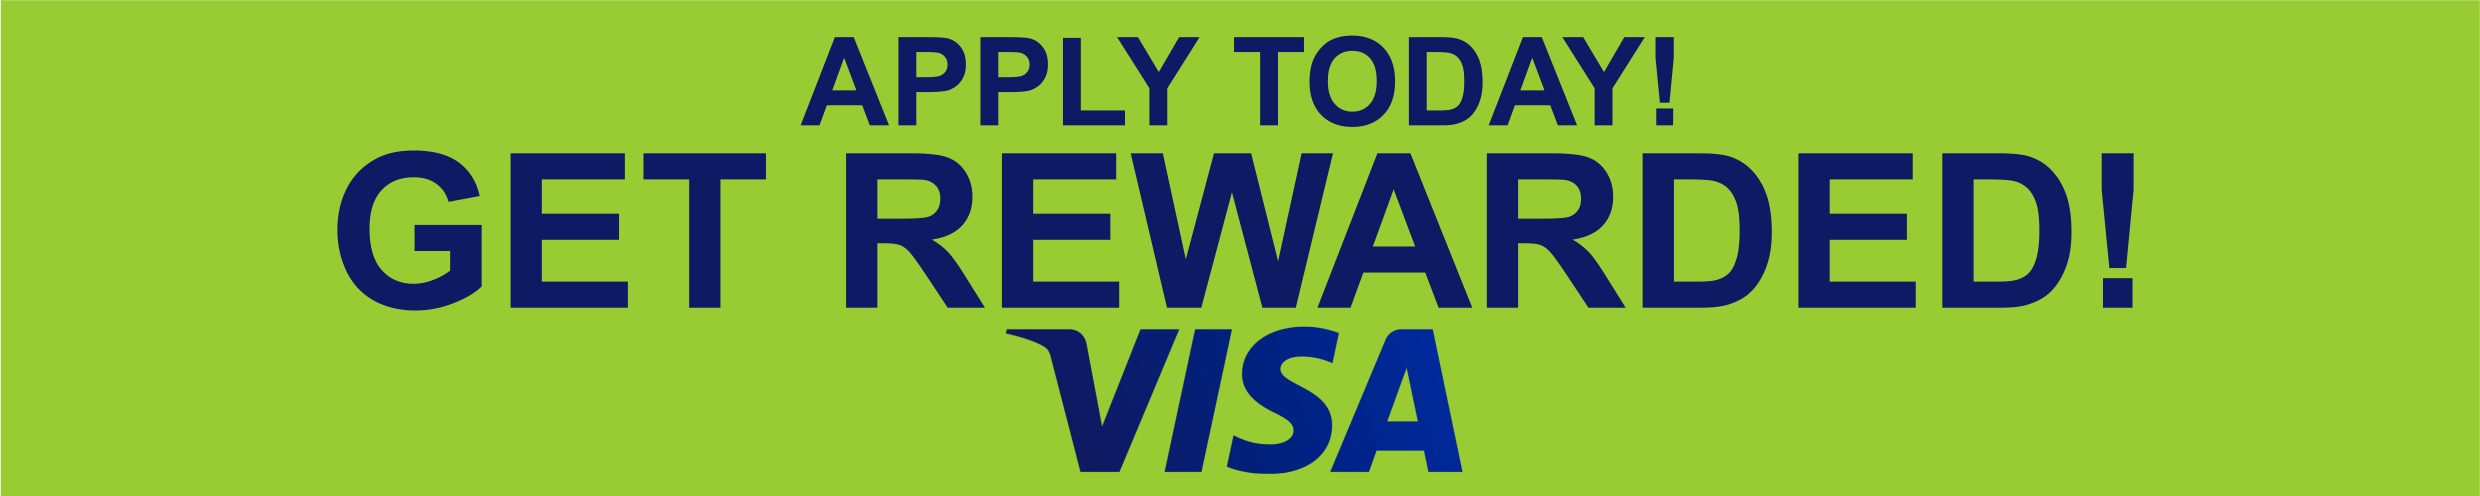 Apply Today! Get Rewarded! Visa